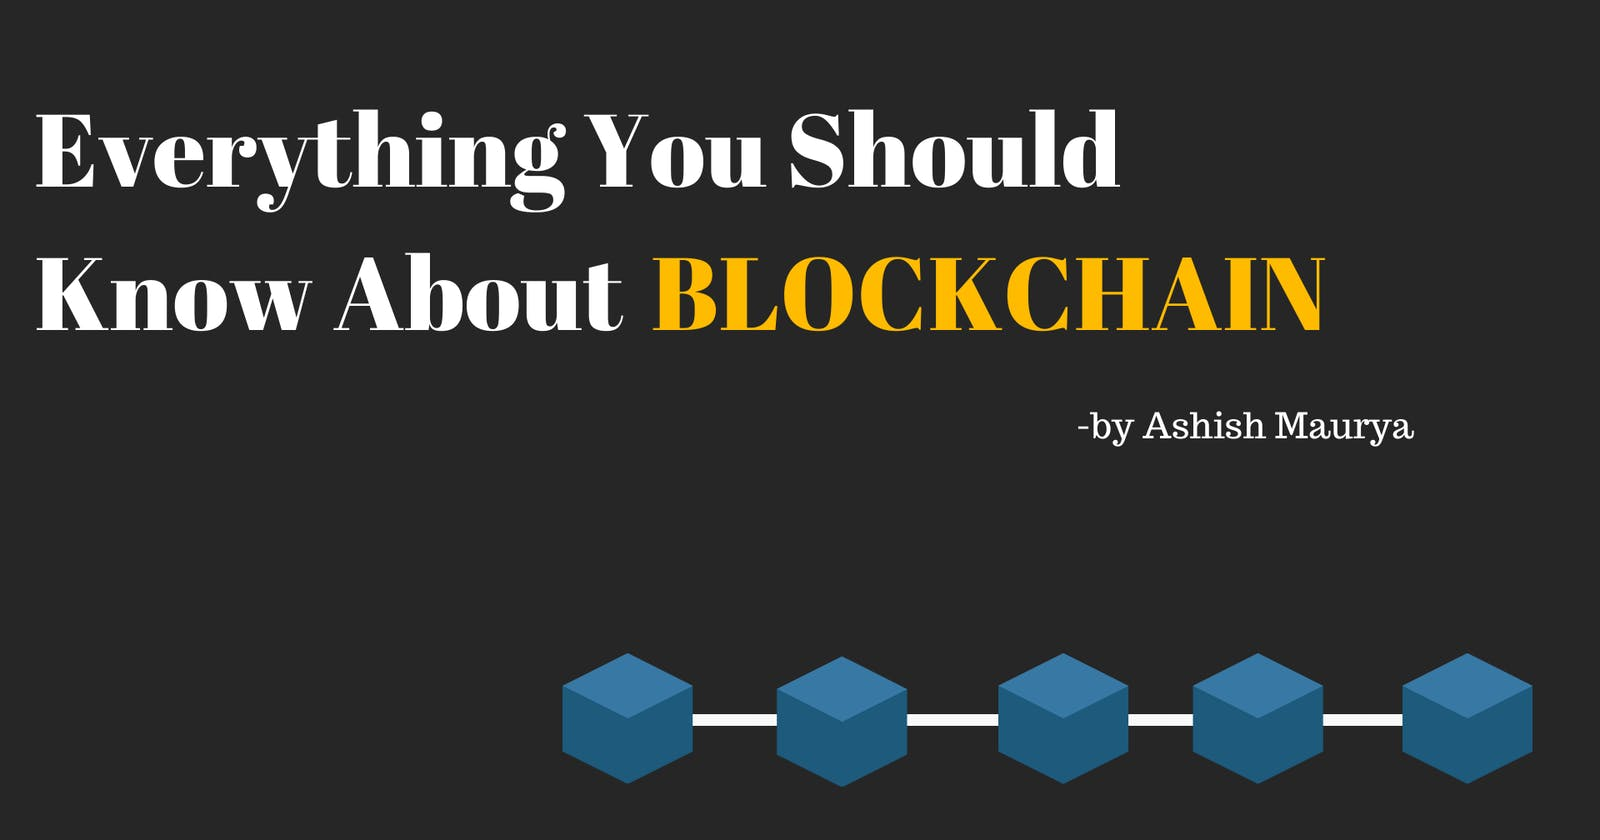 Everything You Should Know About Blockchain.